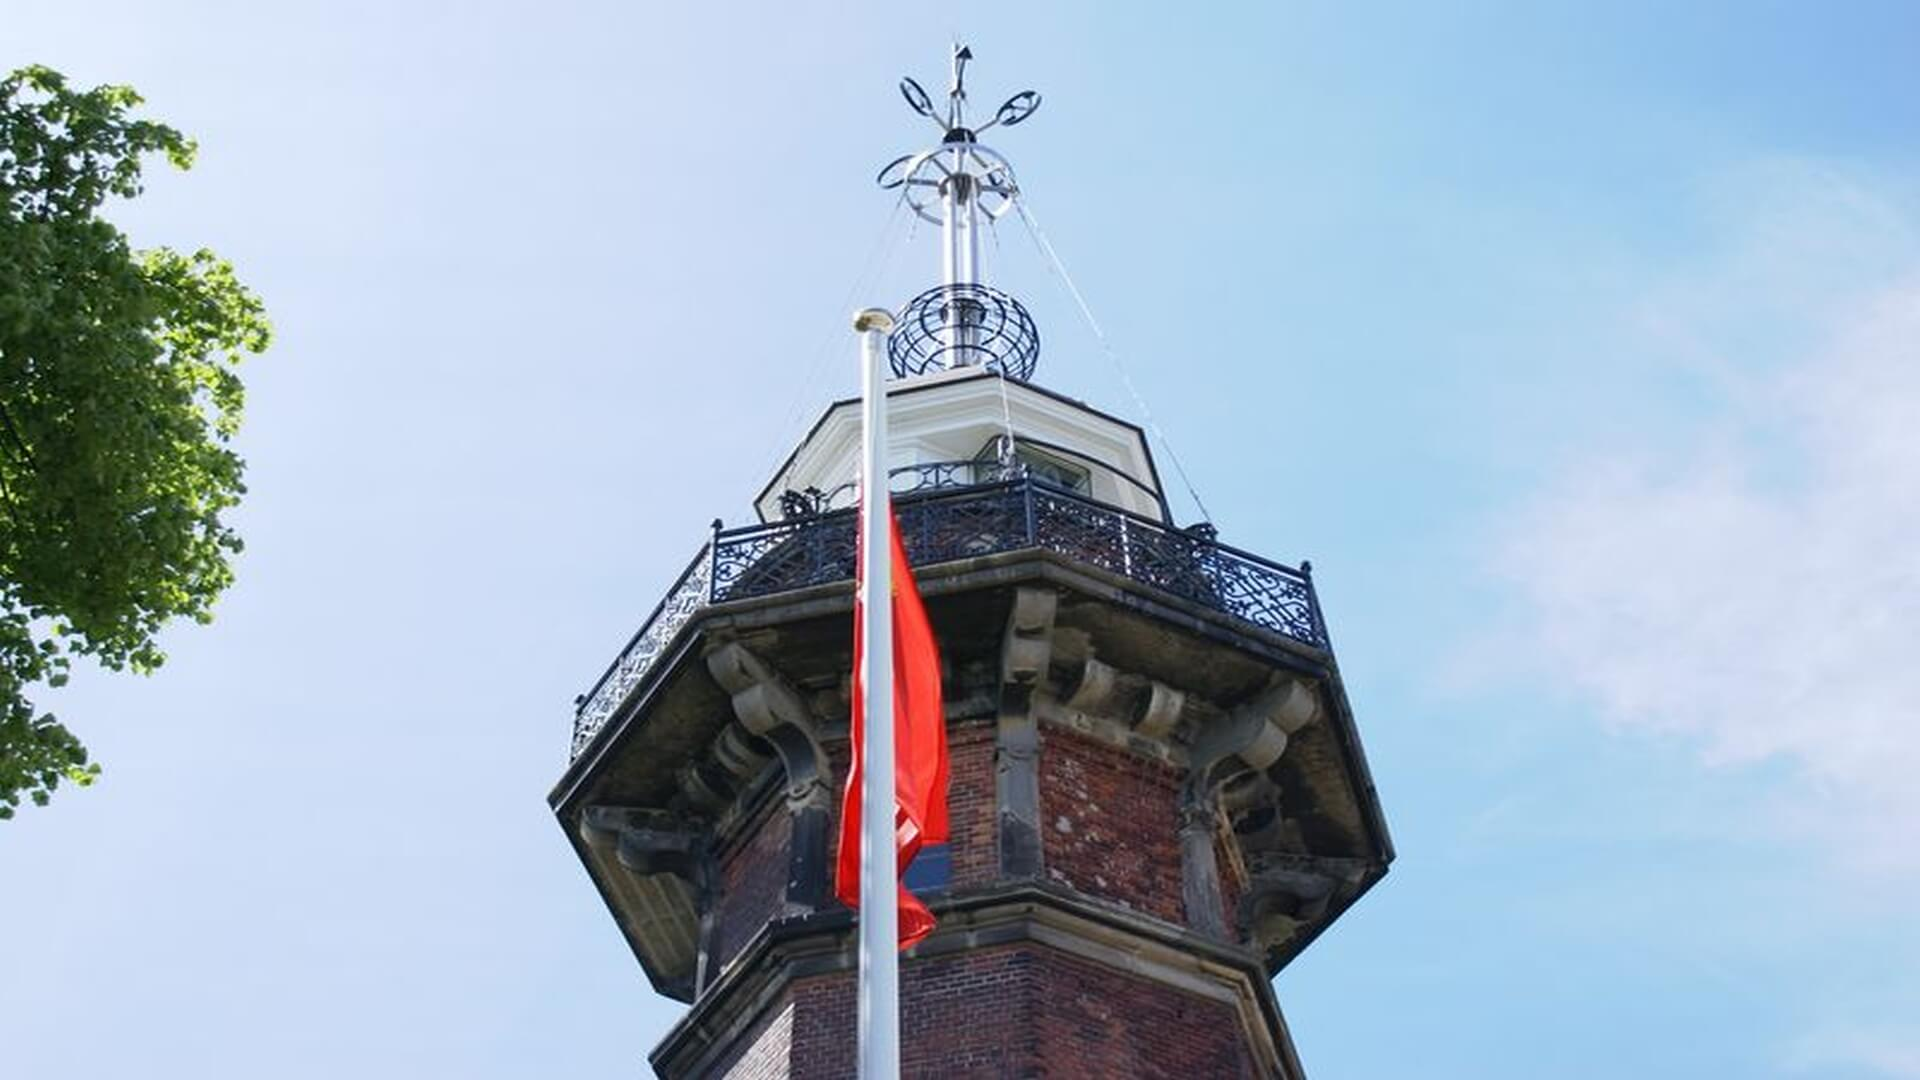 View of the upper part of the lighthouse with the unique time ball that enabled sailors to measure time accurately when sailing out.